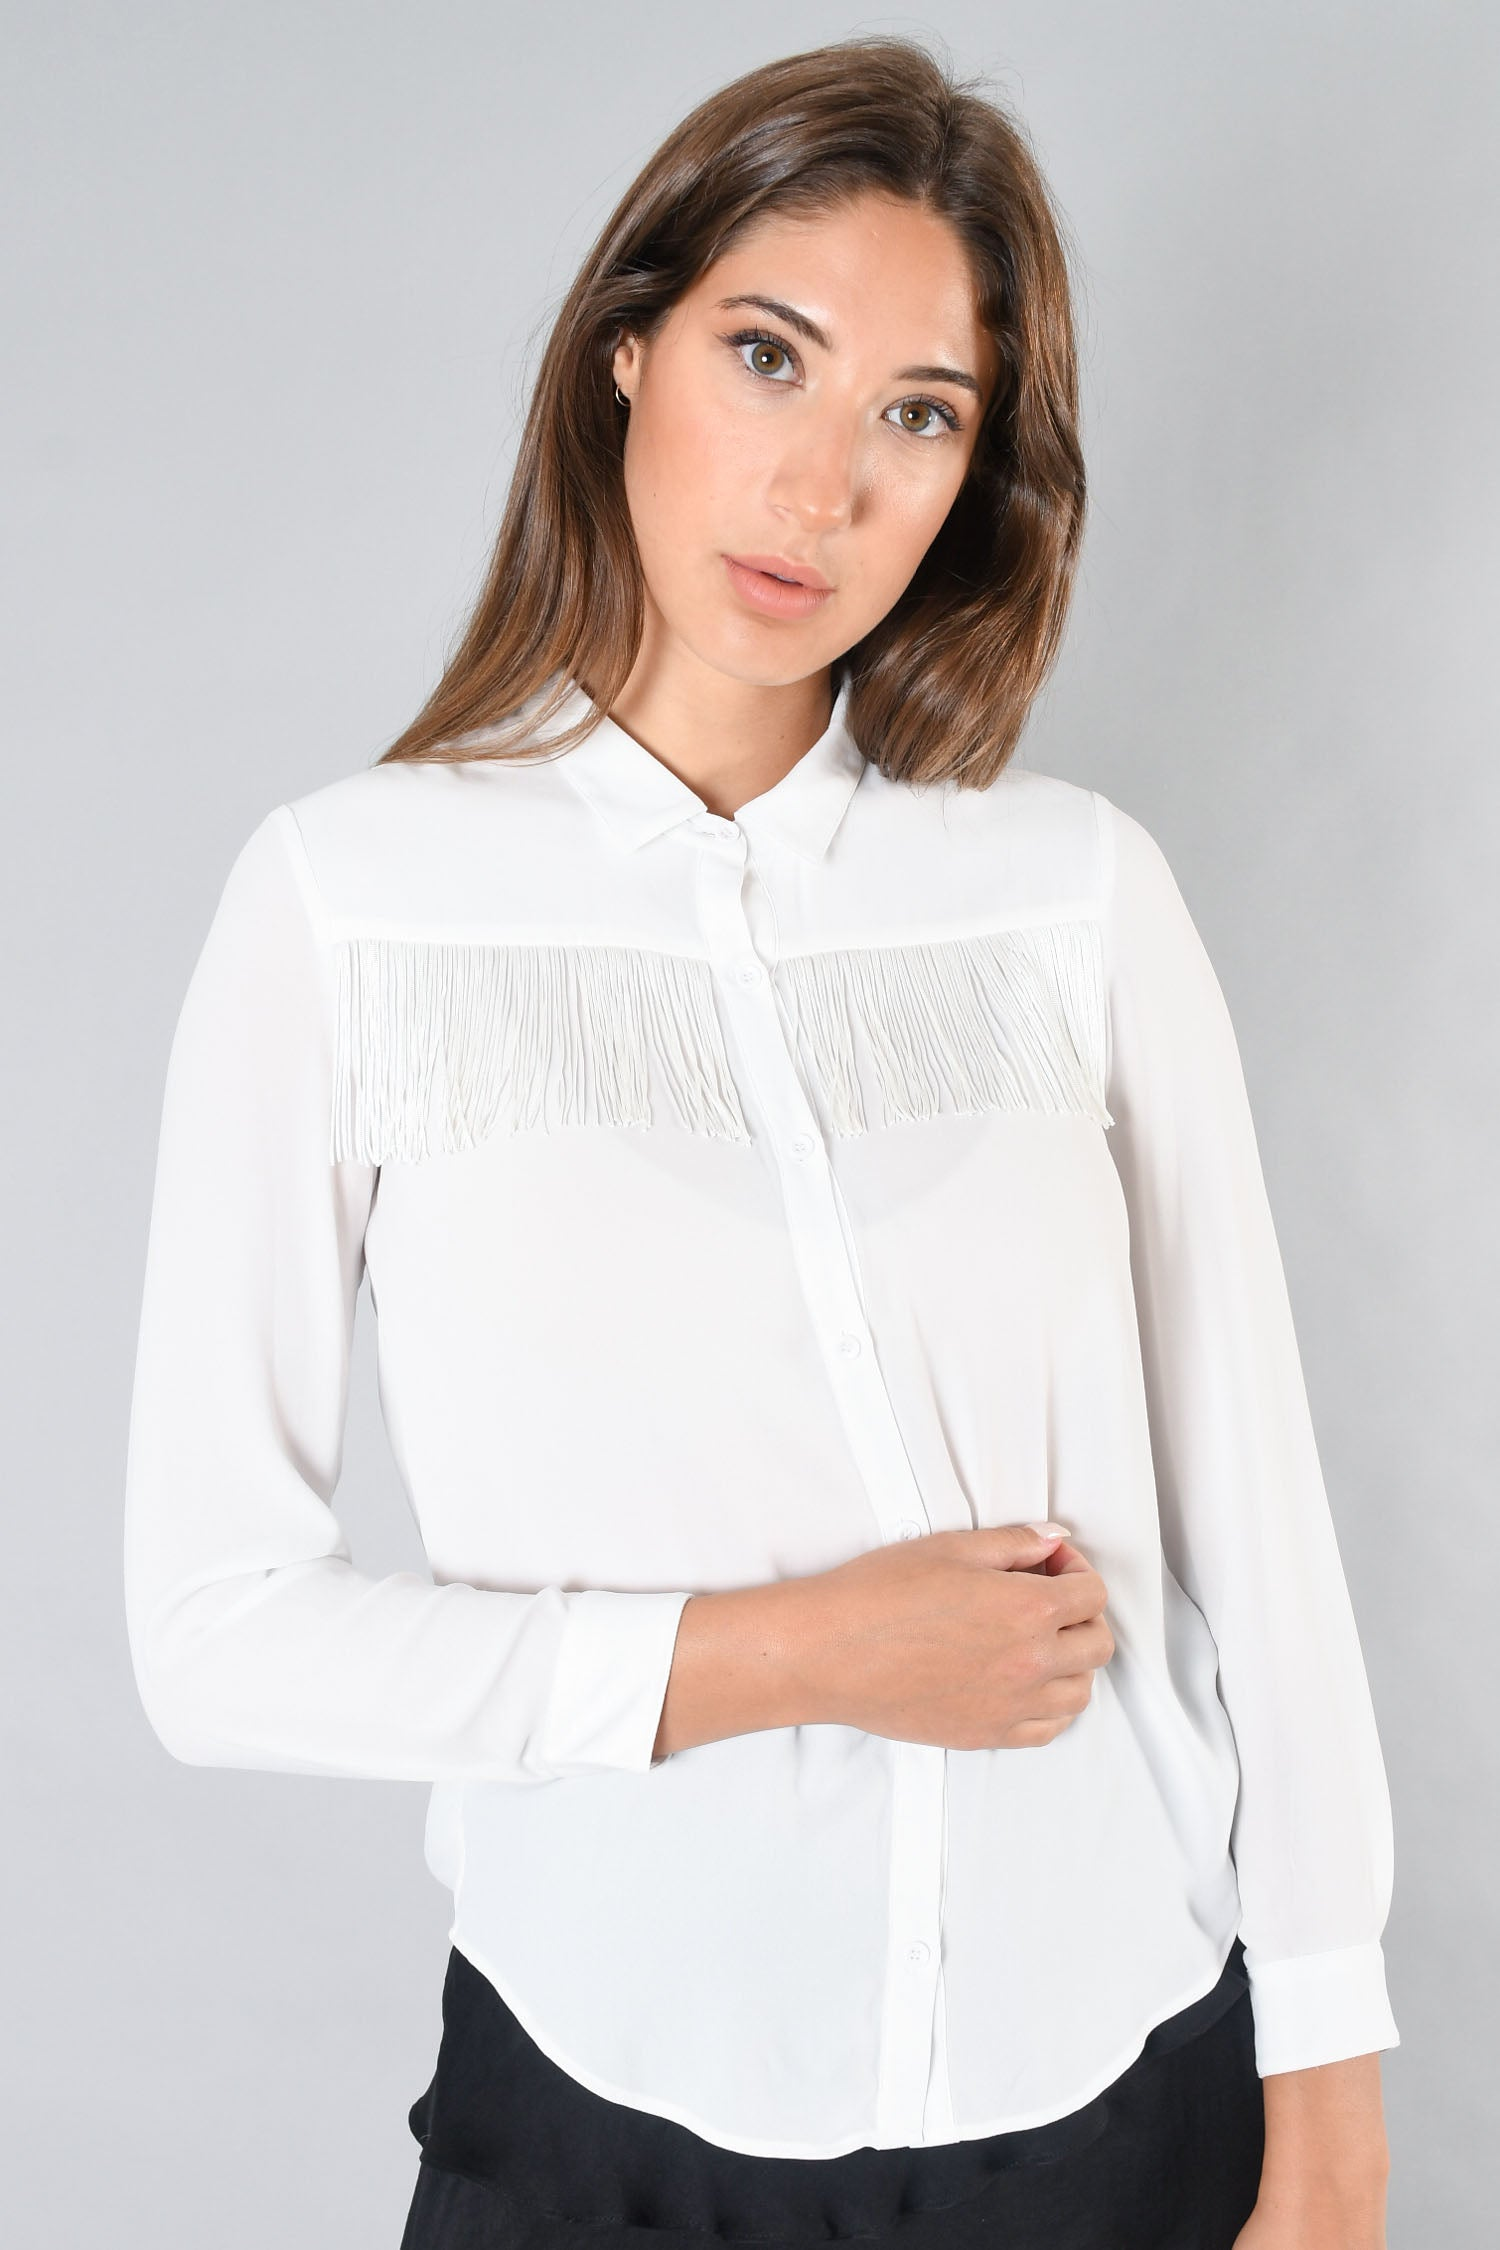 The Kooples White Fringe Button-Up Size S